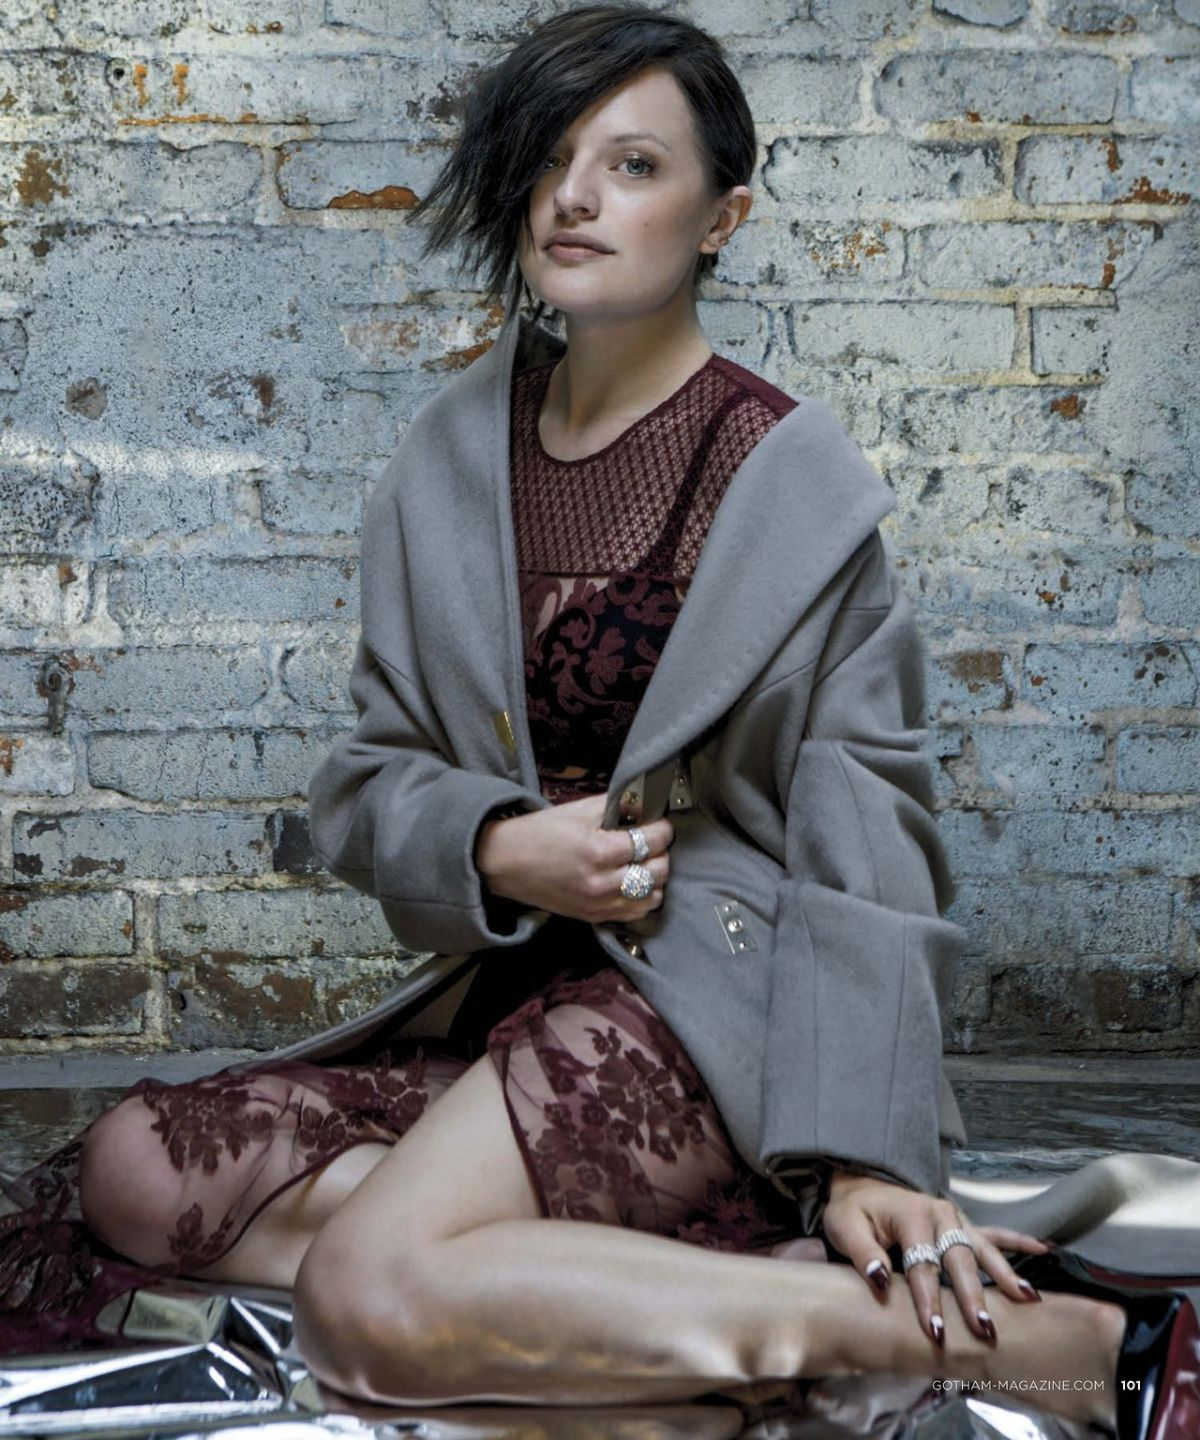 Elisabeth Moss In Gotham Magazine  September 2014 Issue